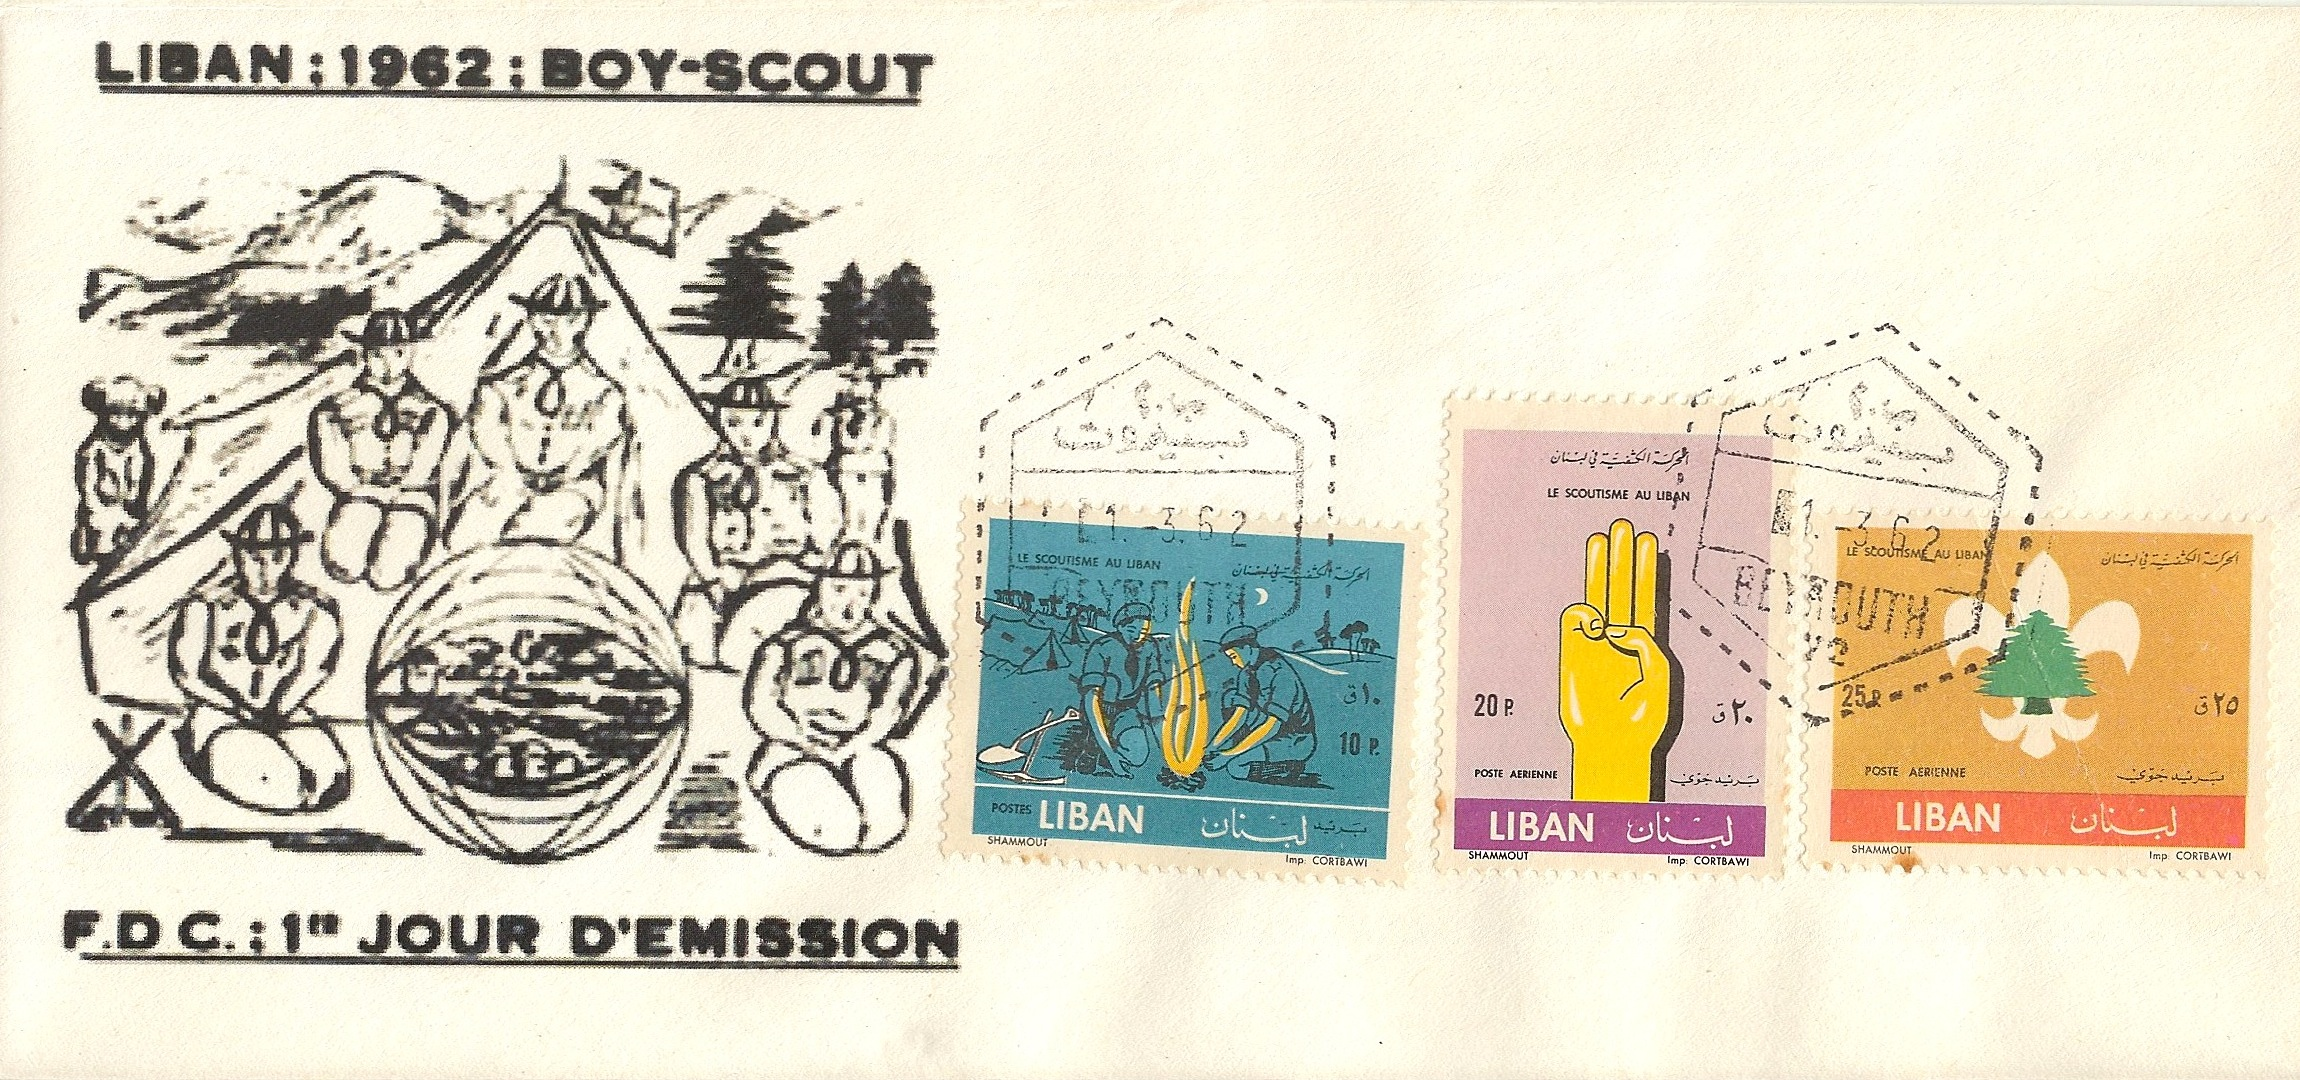 1962-03-01-scout2_